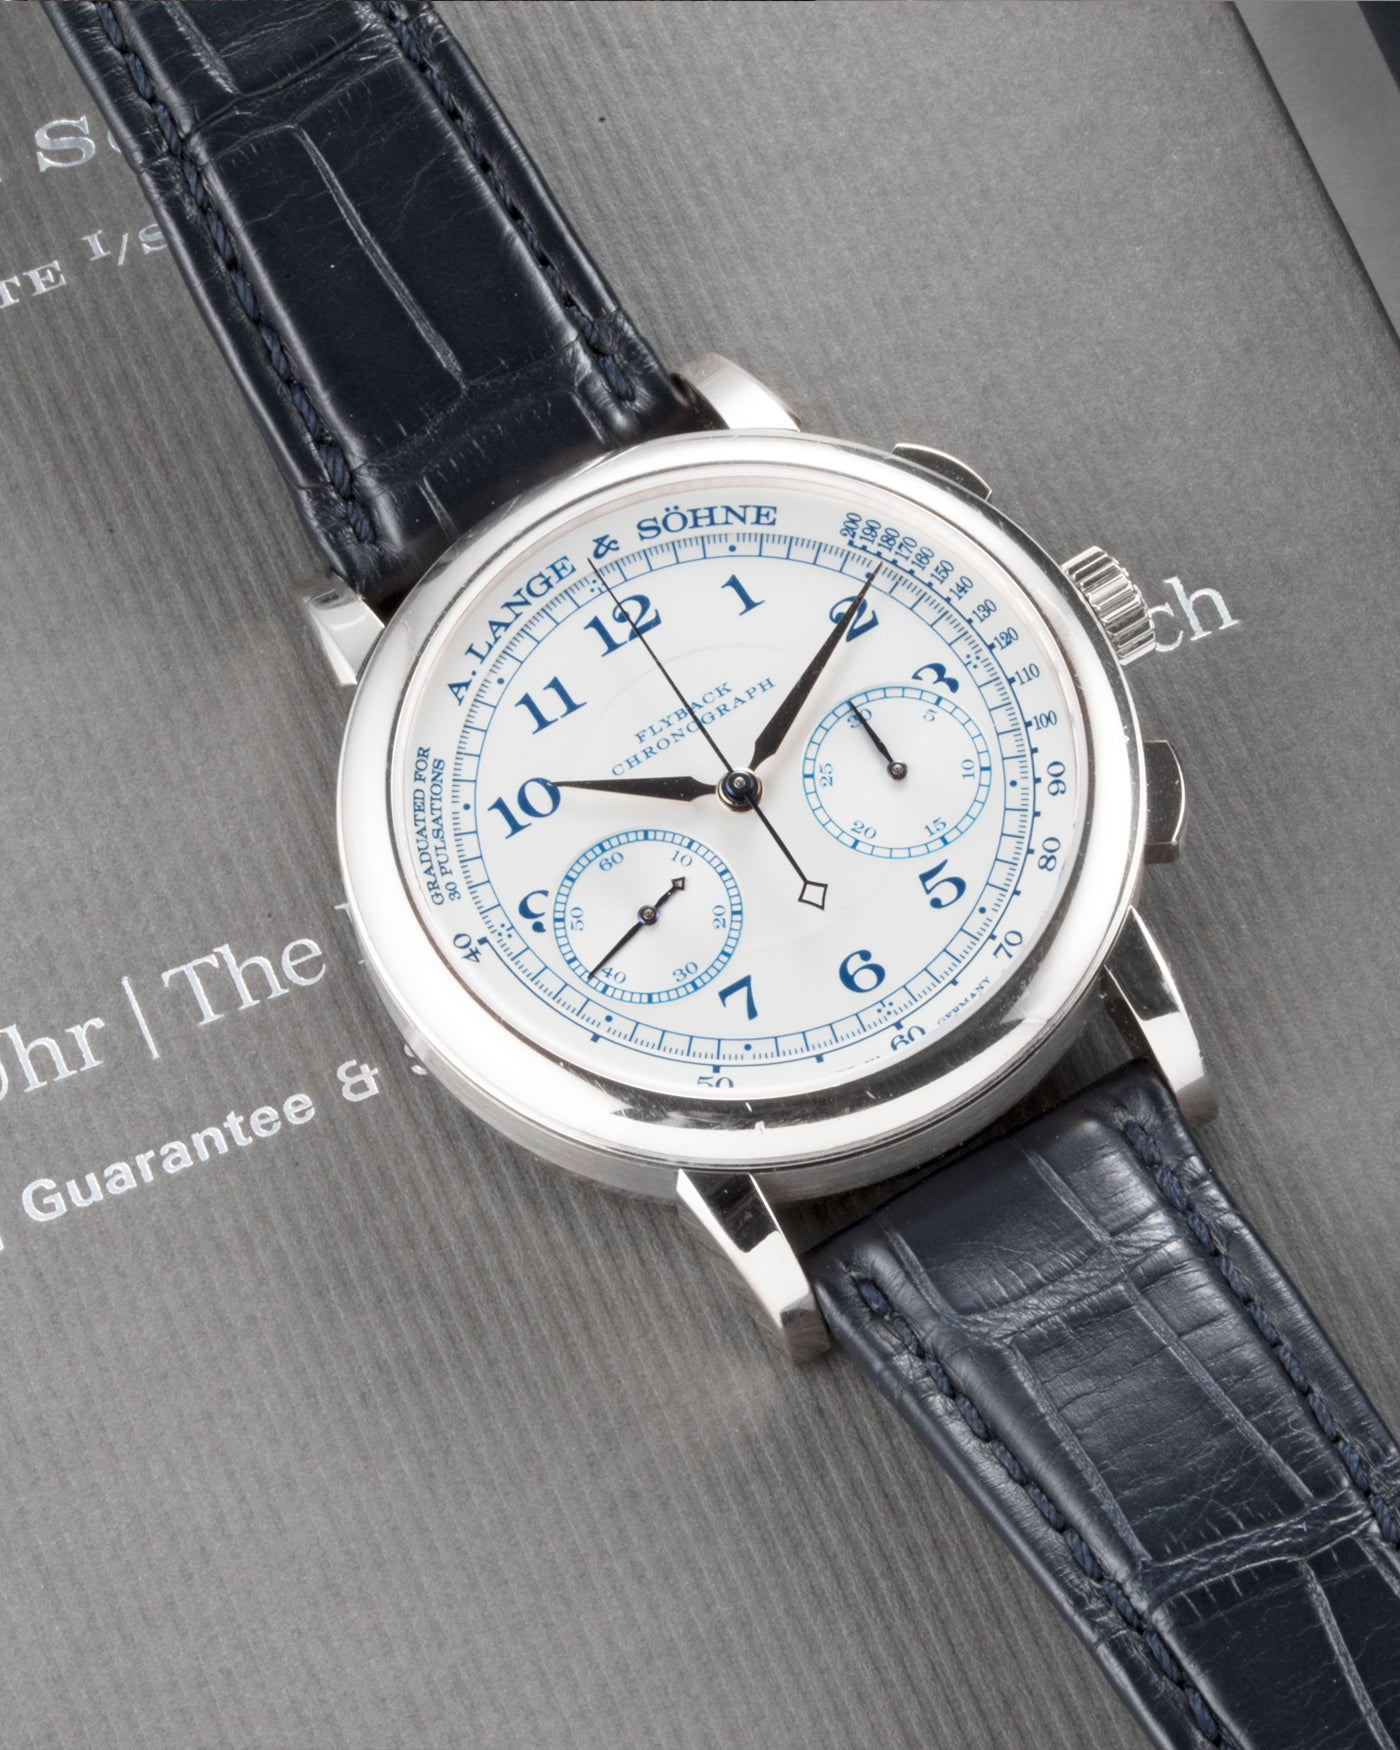 A. Lange & Sohne 1815 Chronograph Boutique Edition